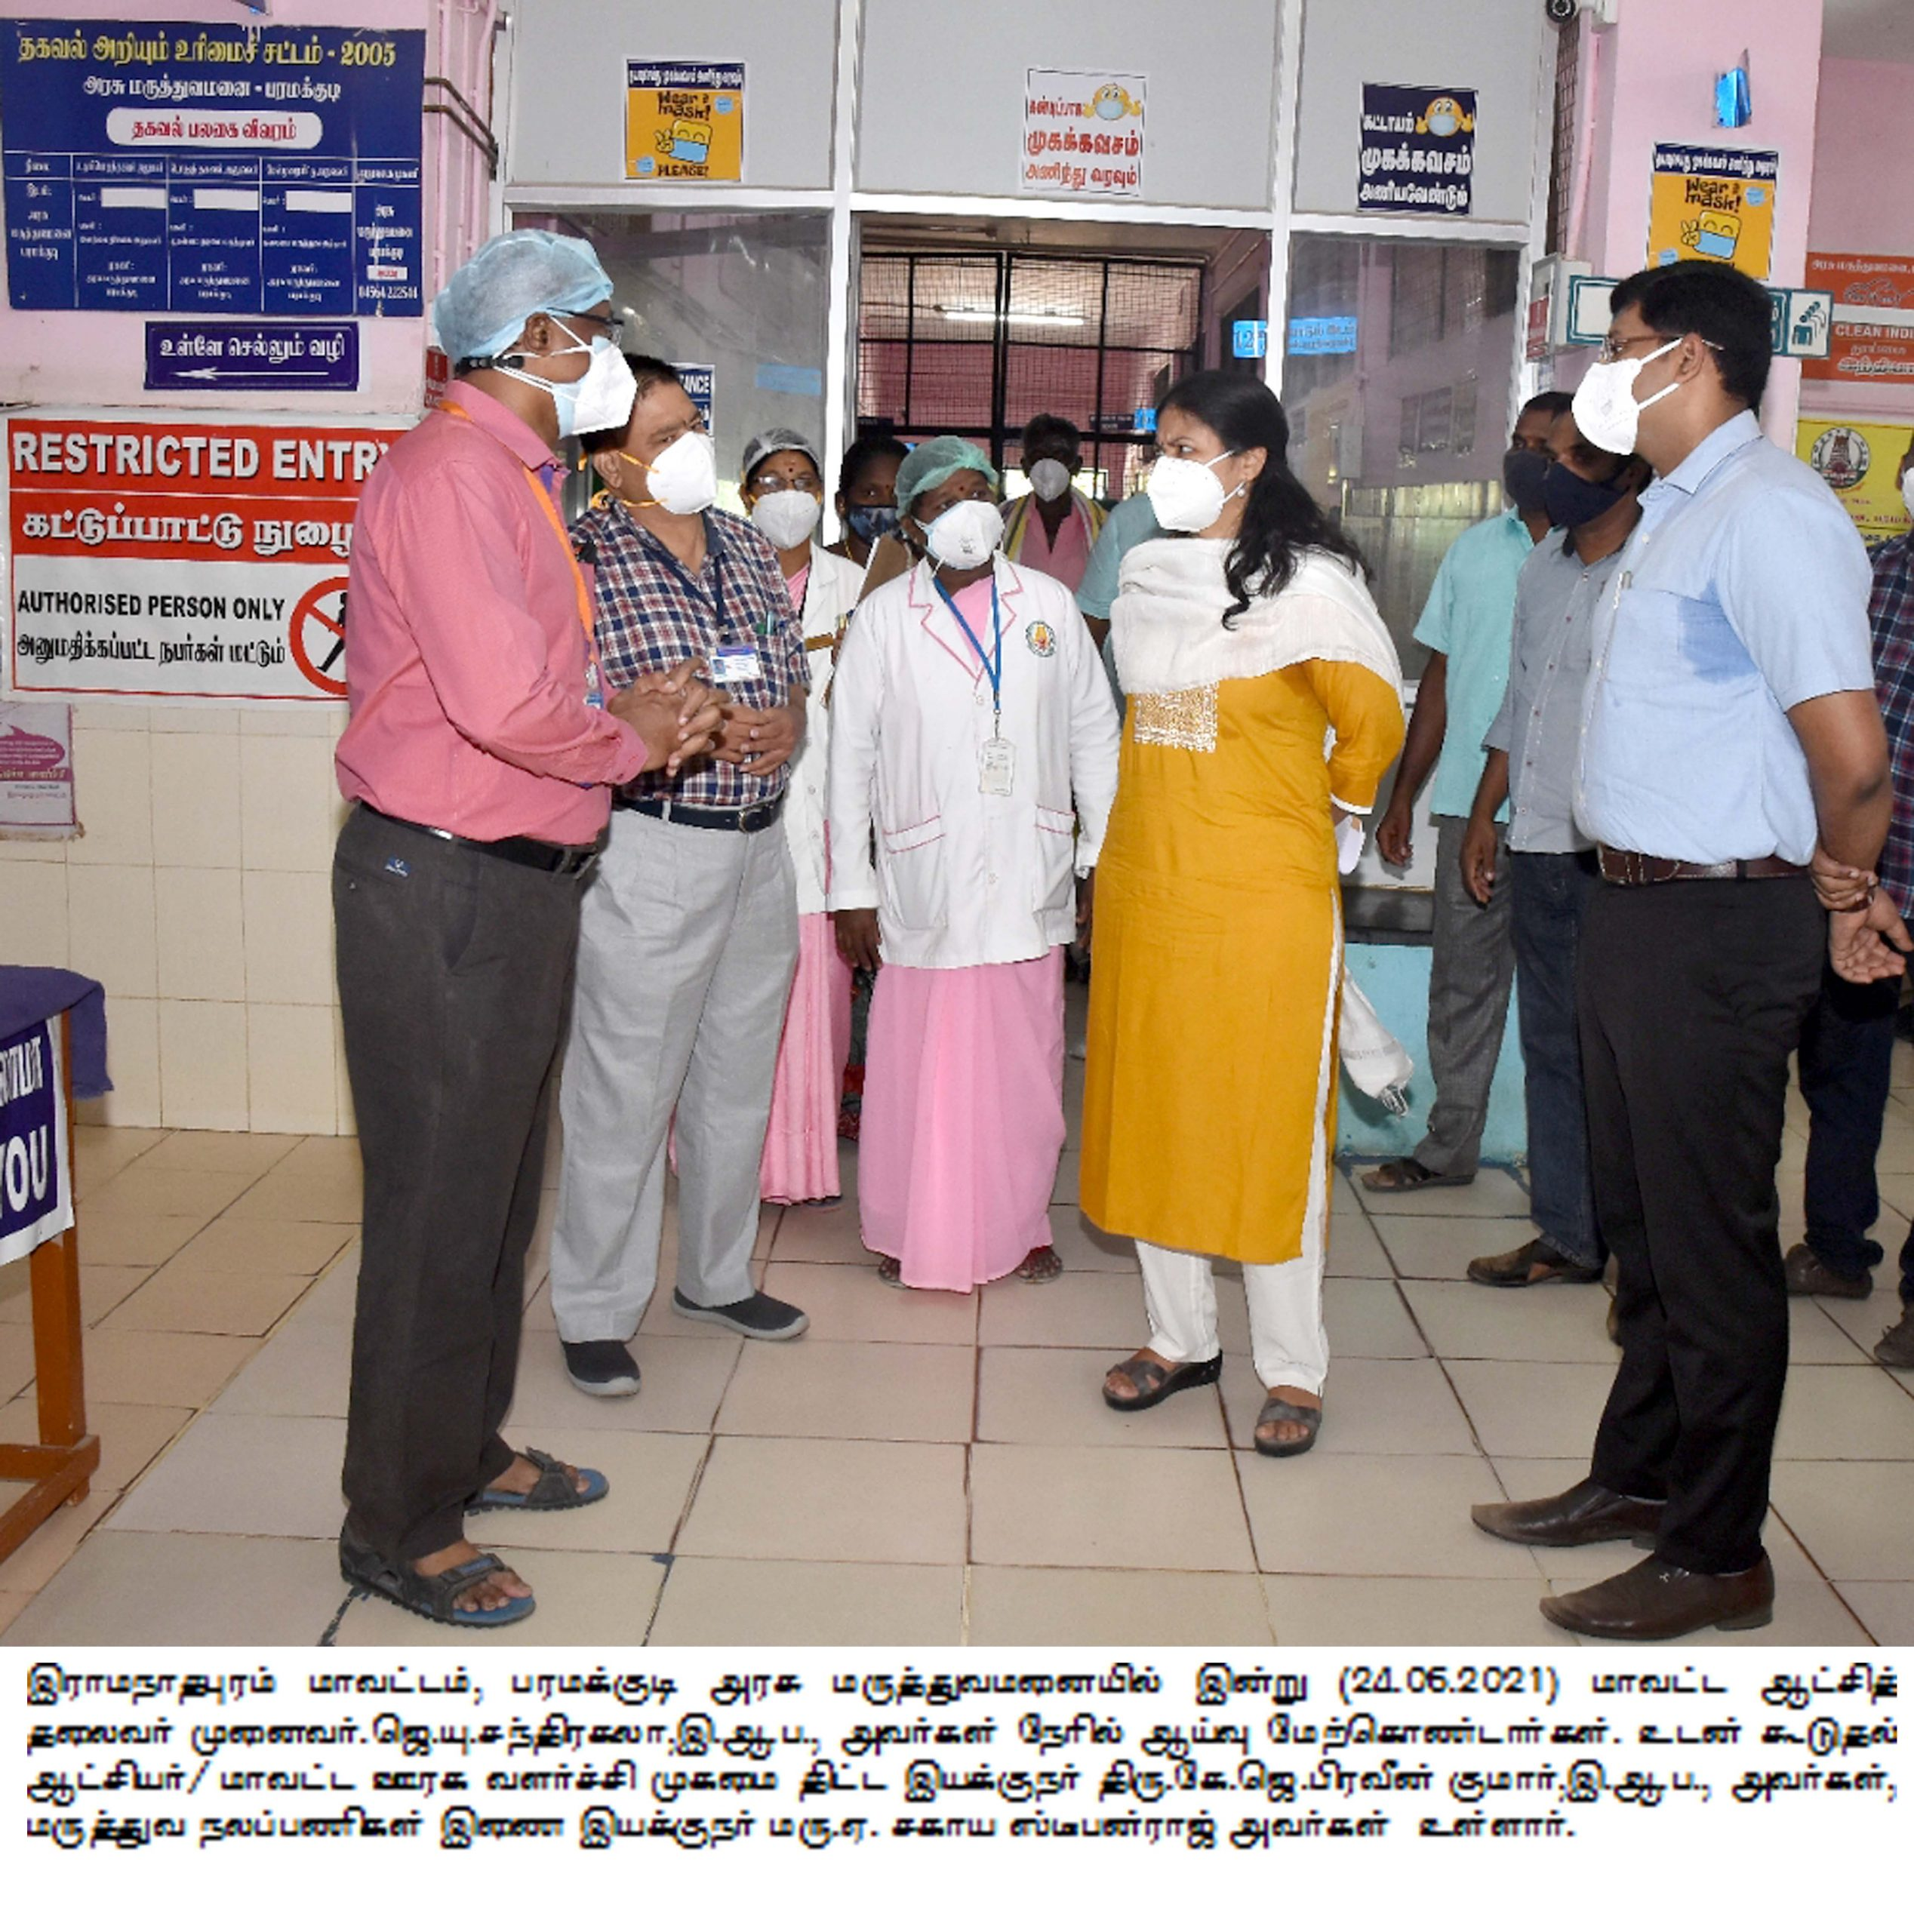 34_COLLECTOR INSPECTION PARAMAKUDI GH DEVELOPMENT WORKS NEWS AND PHOTOS_24/06/2021